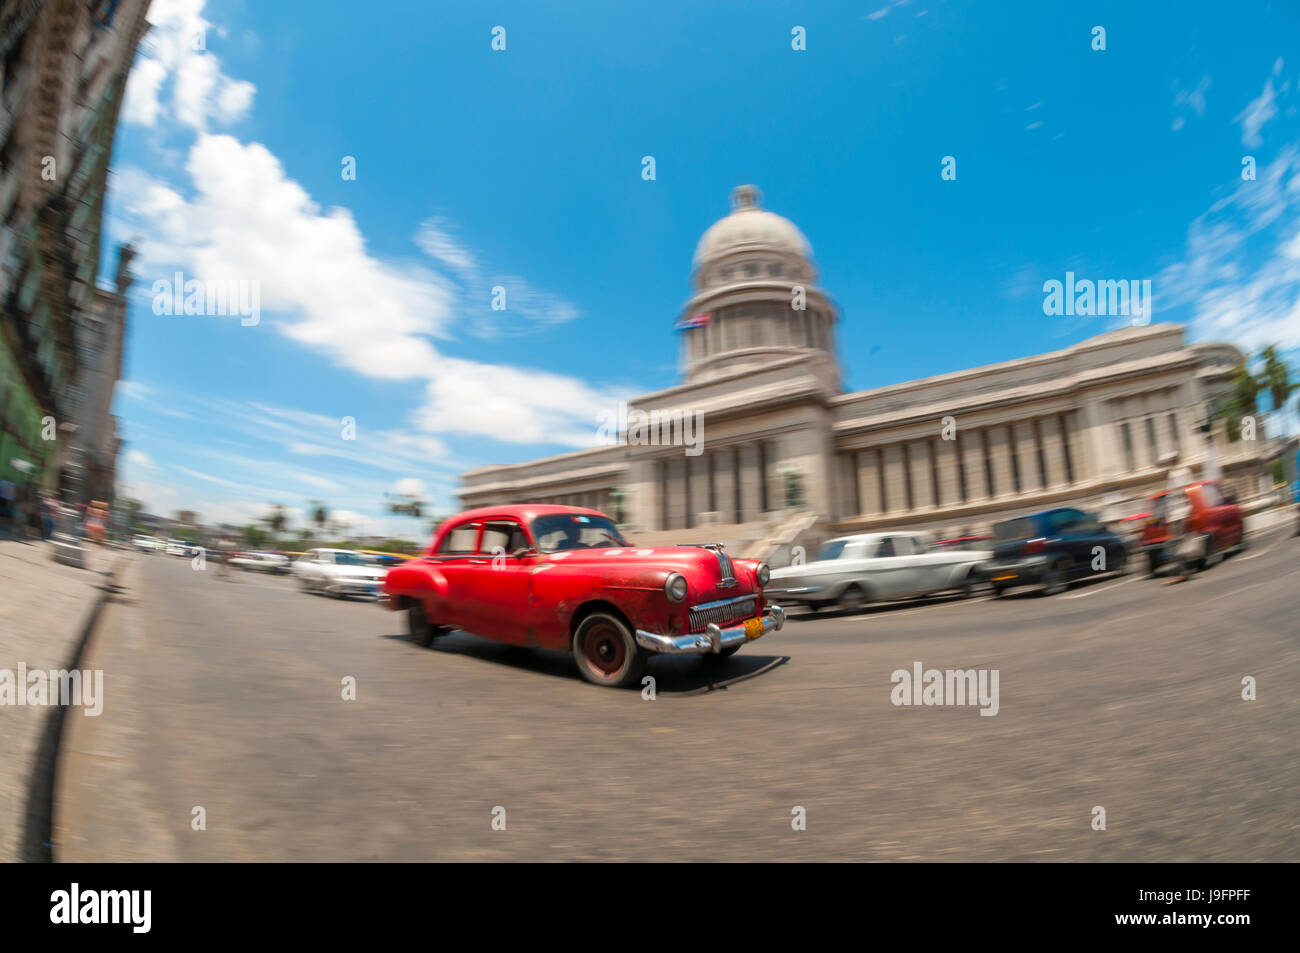 HAVANA, CUBA - JUNE, 2011: Classic American Cuban vintage taxi car passes in front of the Capitolio building in - Stock Image